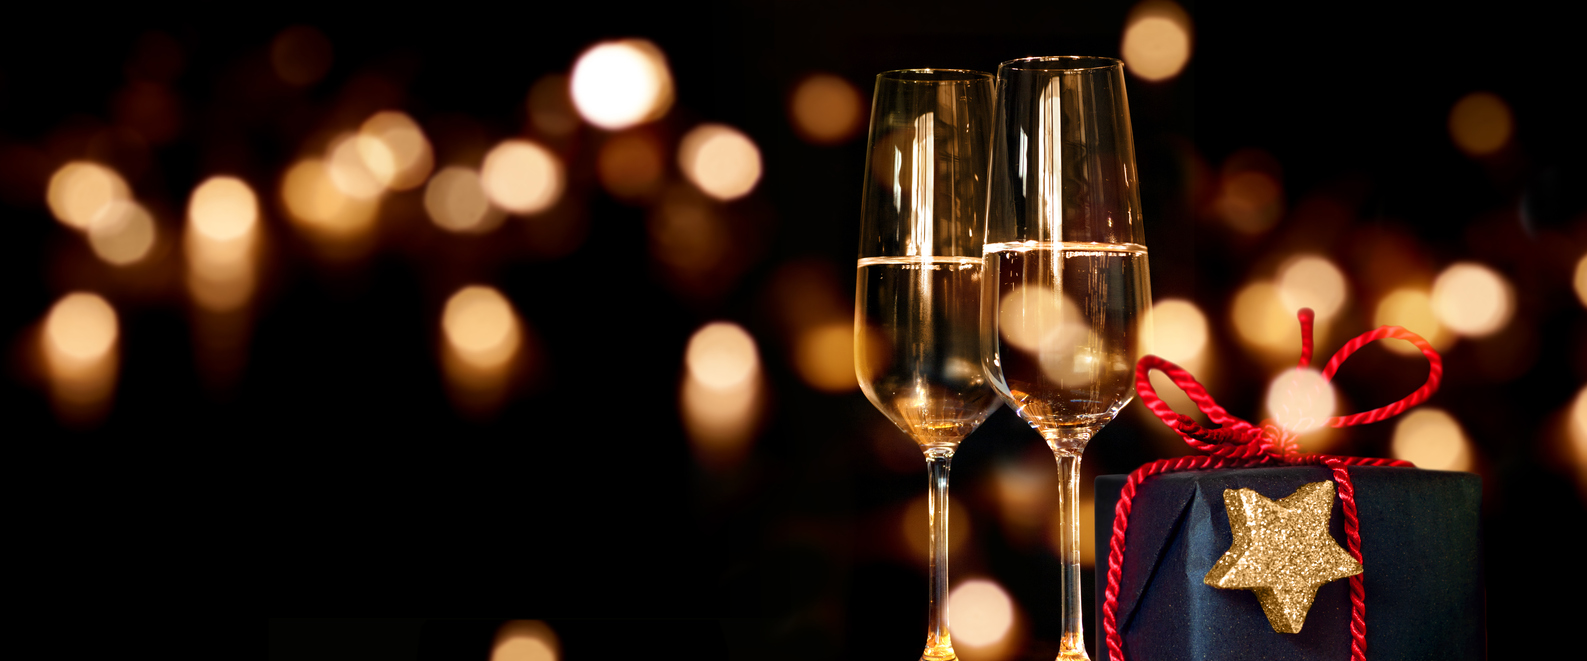 Christmas Party Venue Exeter present with champagne glasses in front of a festive lighted background